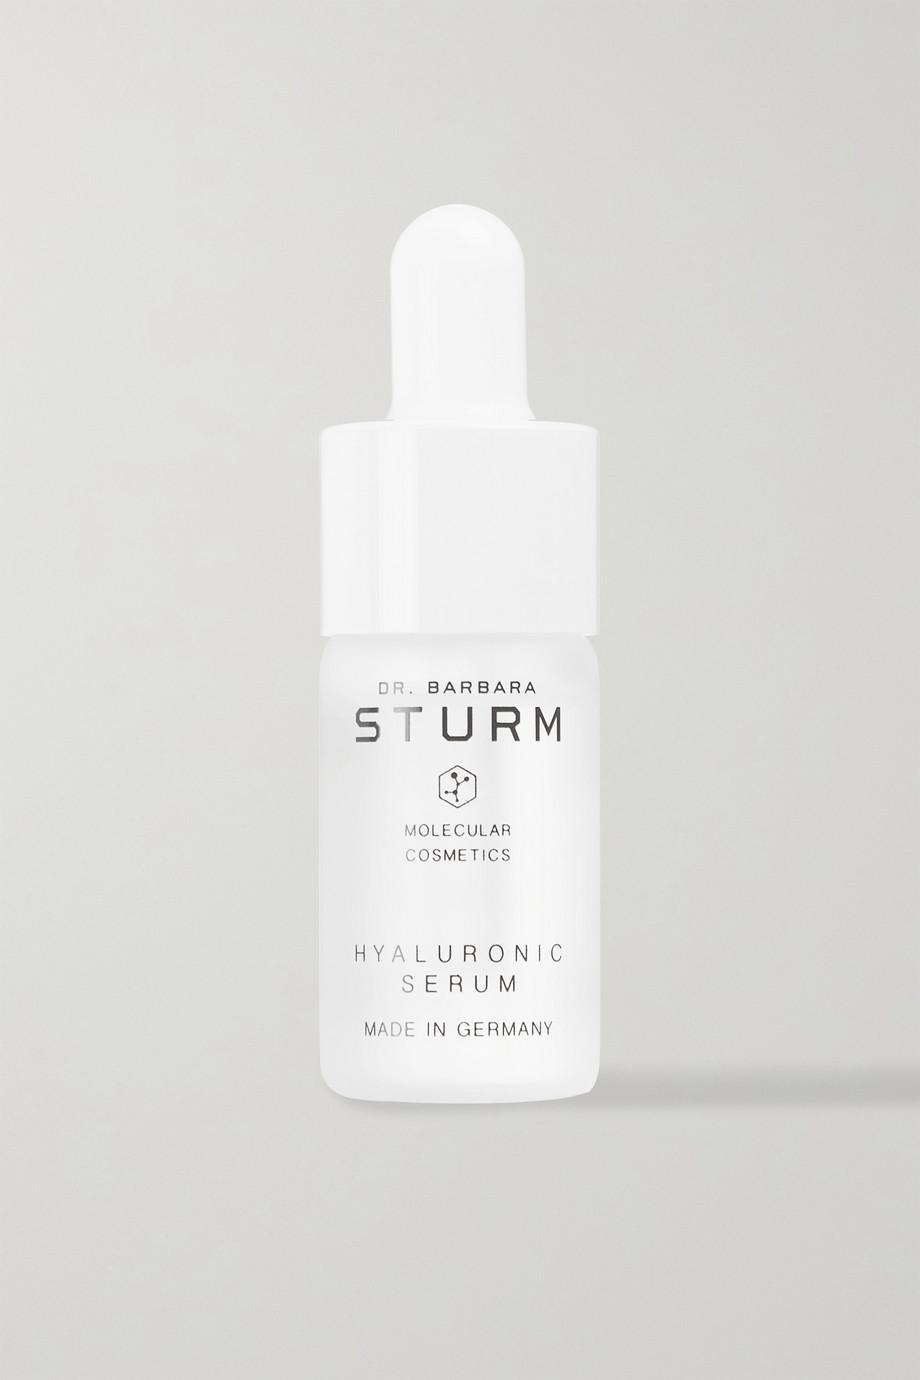 Dr. Barbara Sturm Hyaluronic Serum, 10 ml – Serum